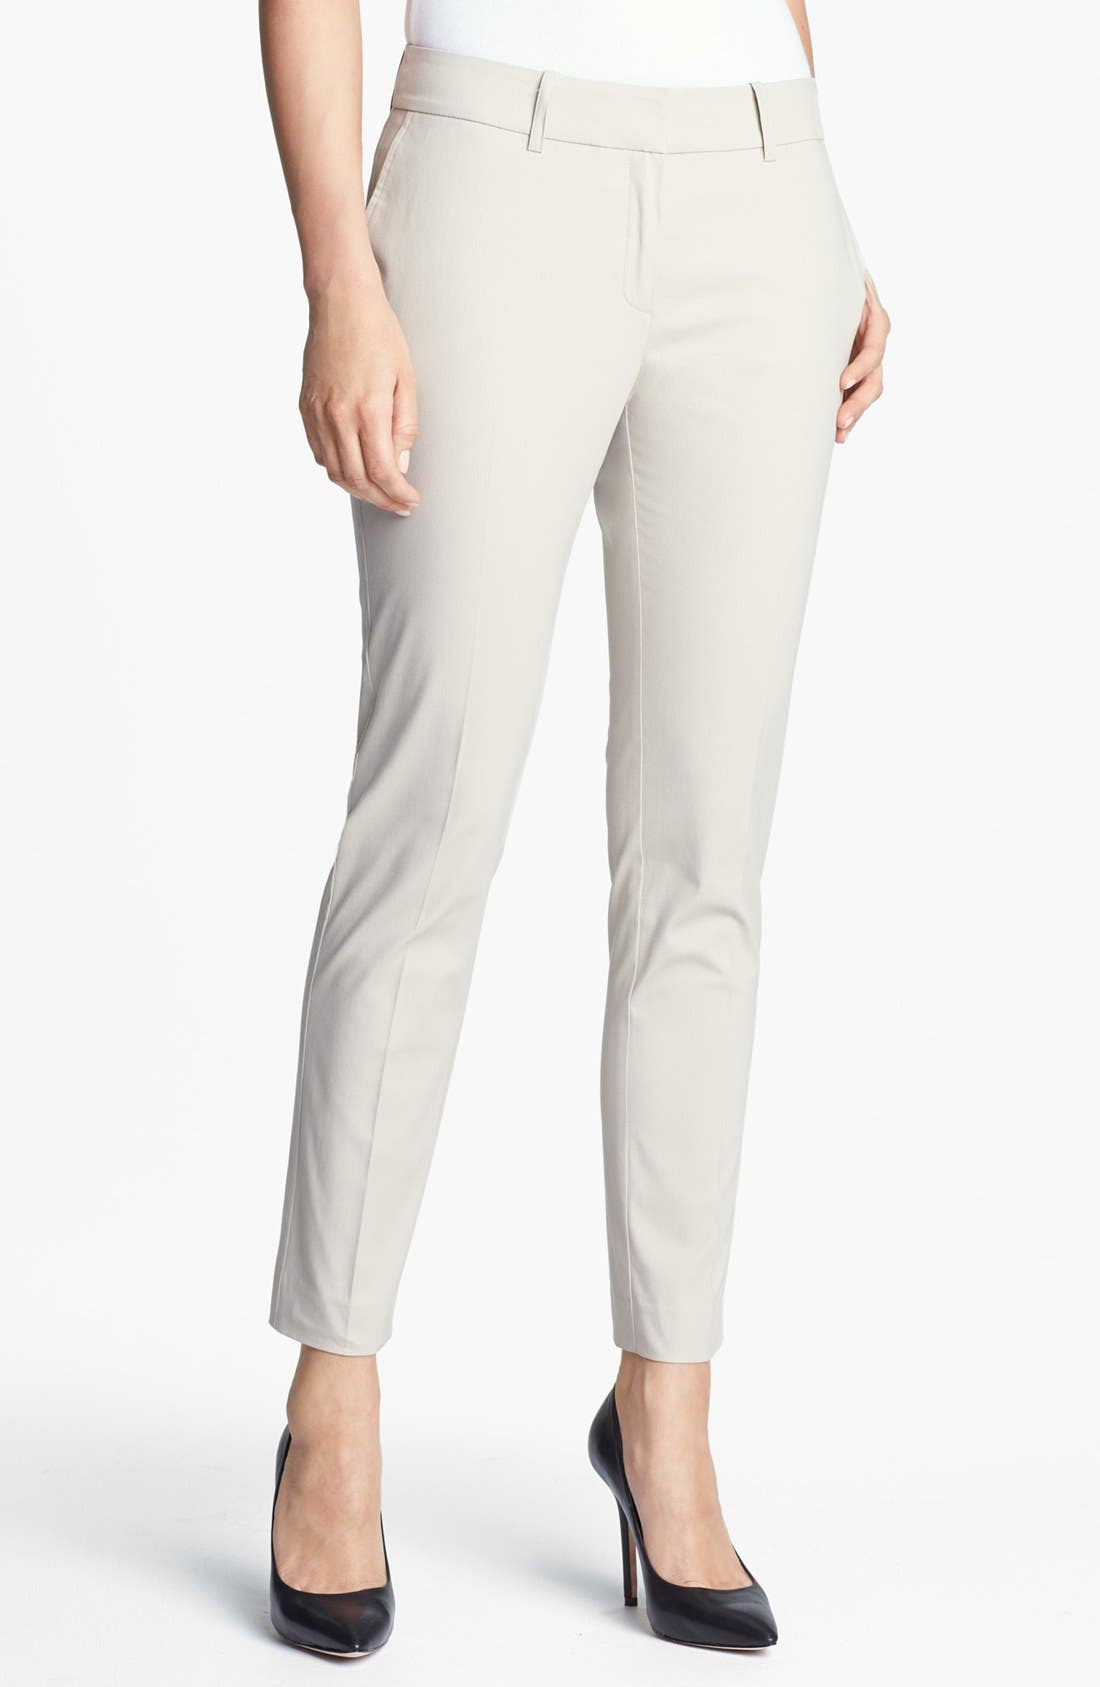 Alternate Image 1 Selected - Lafayette 148 New York Ankle Pants